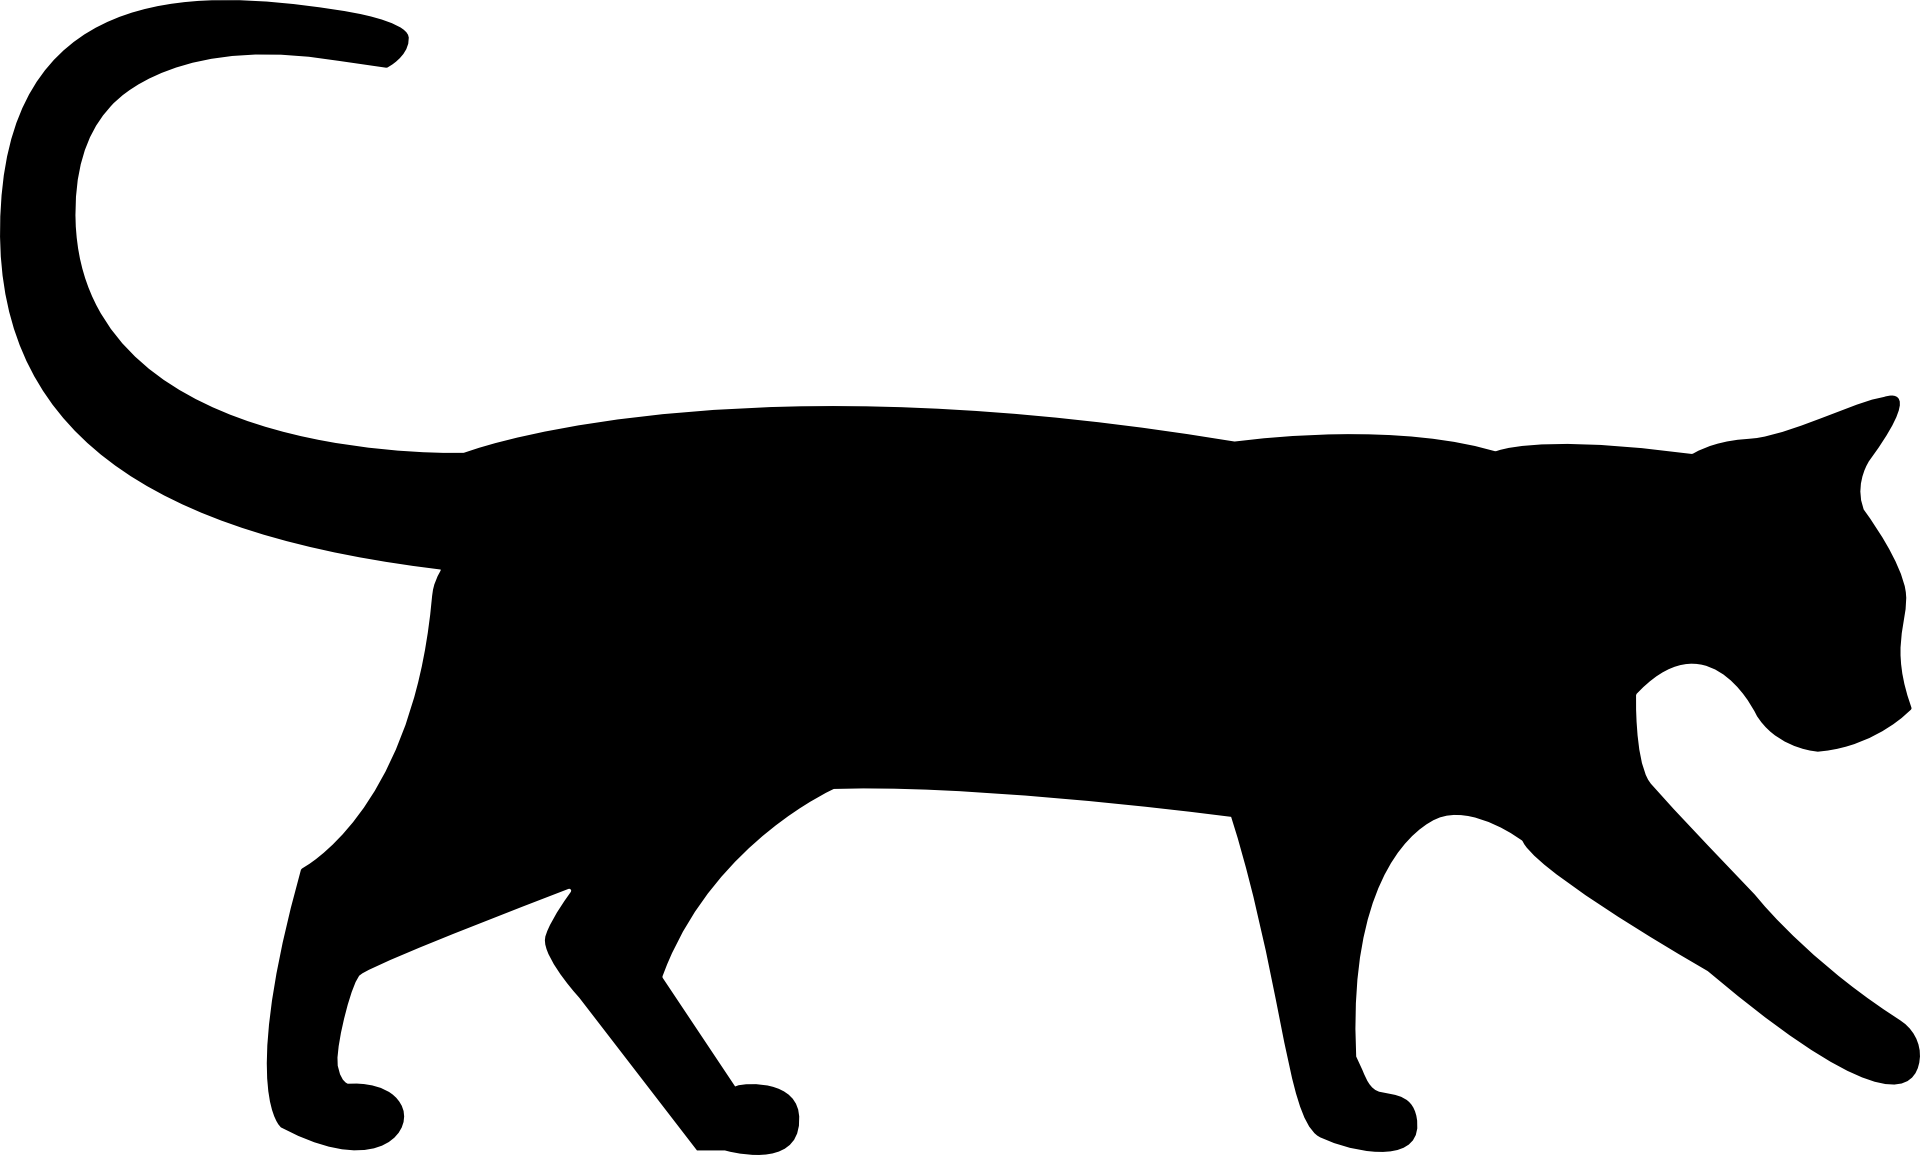 Feeding the cat clipart clip royalty free Szablon kota png czarny / Cat silhouette / public domain | Kot ... clip royalty free